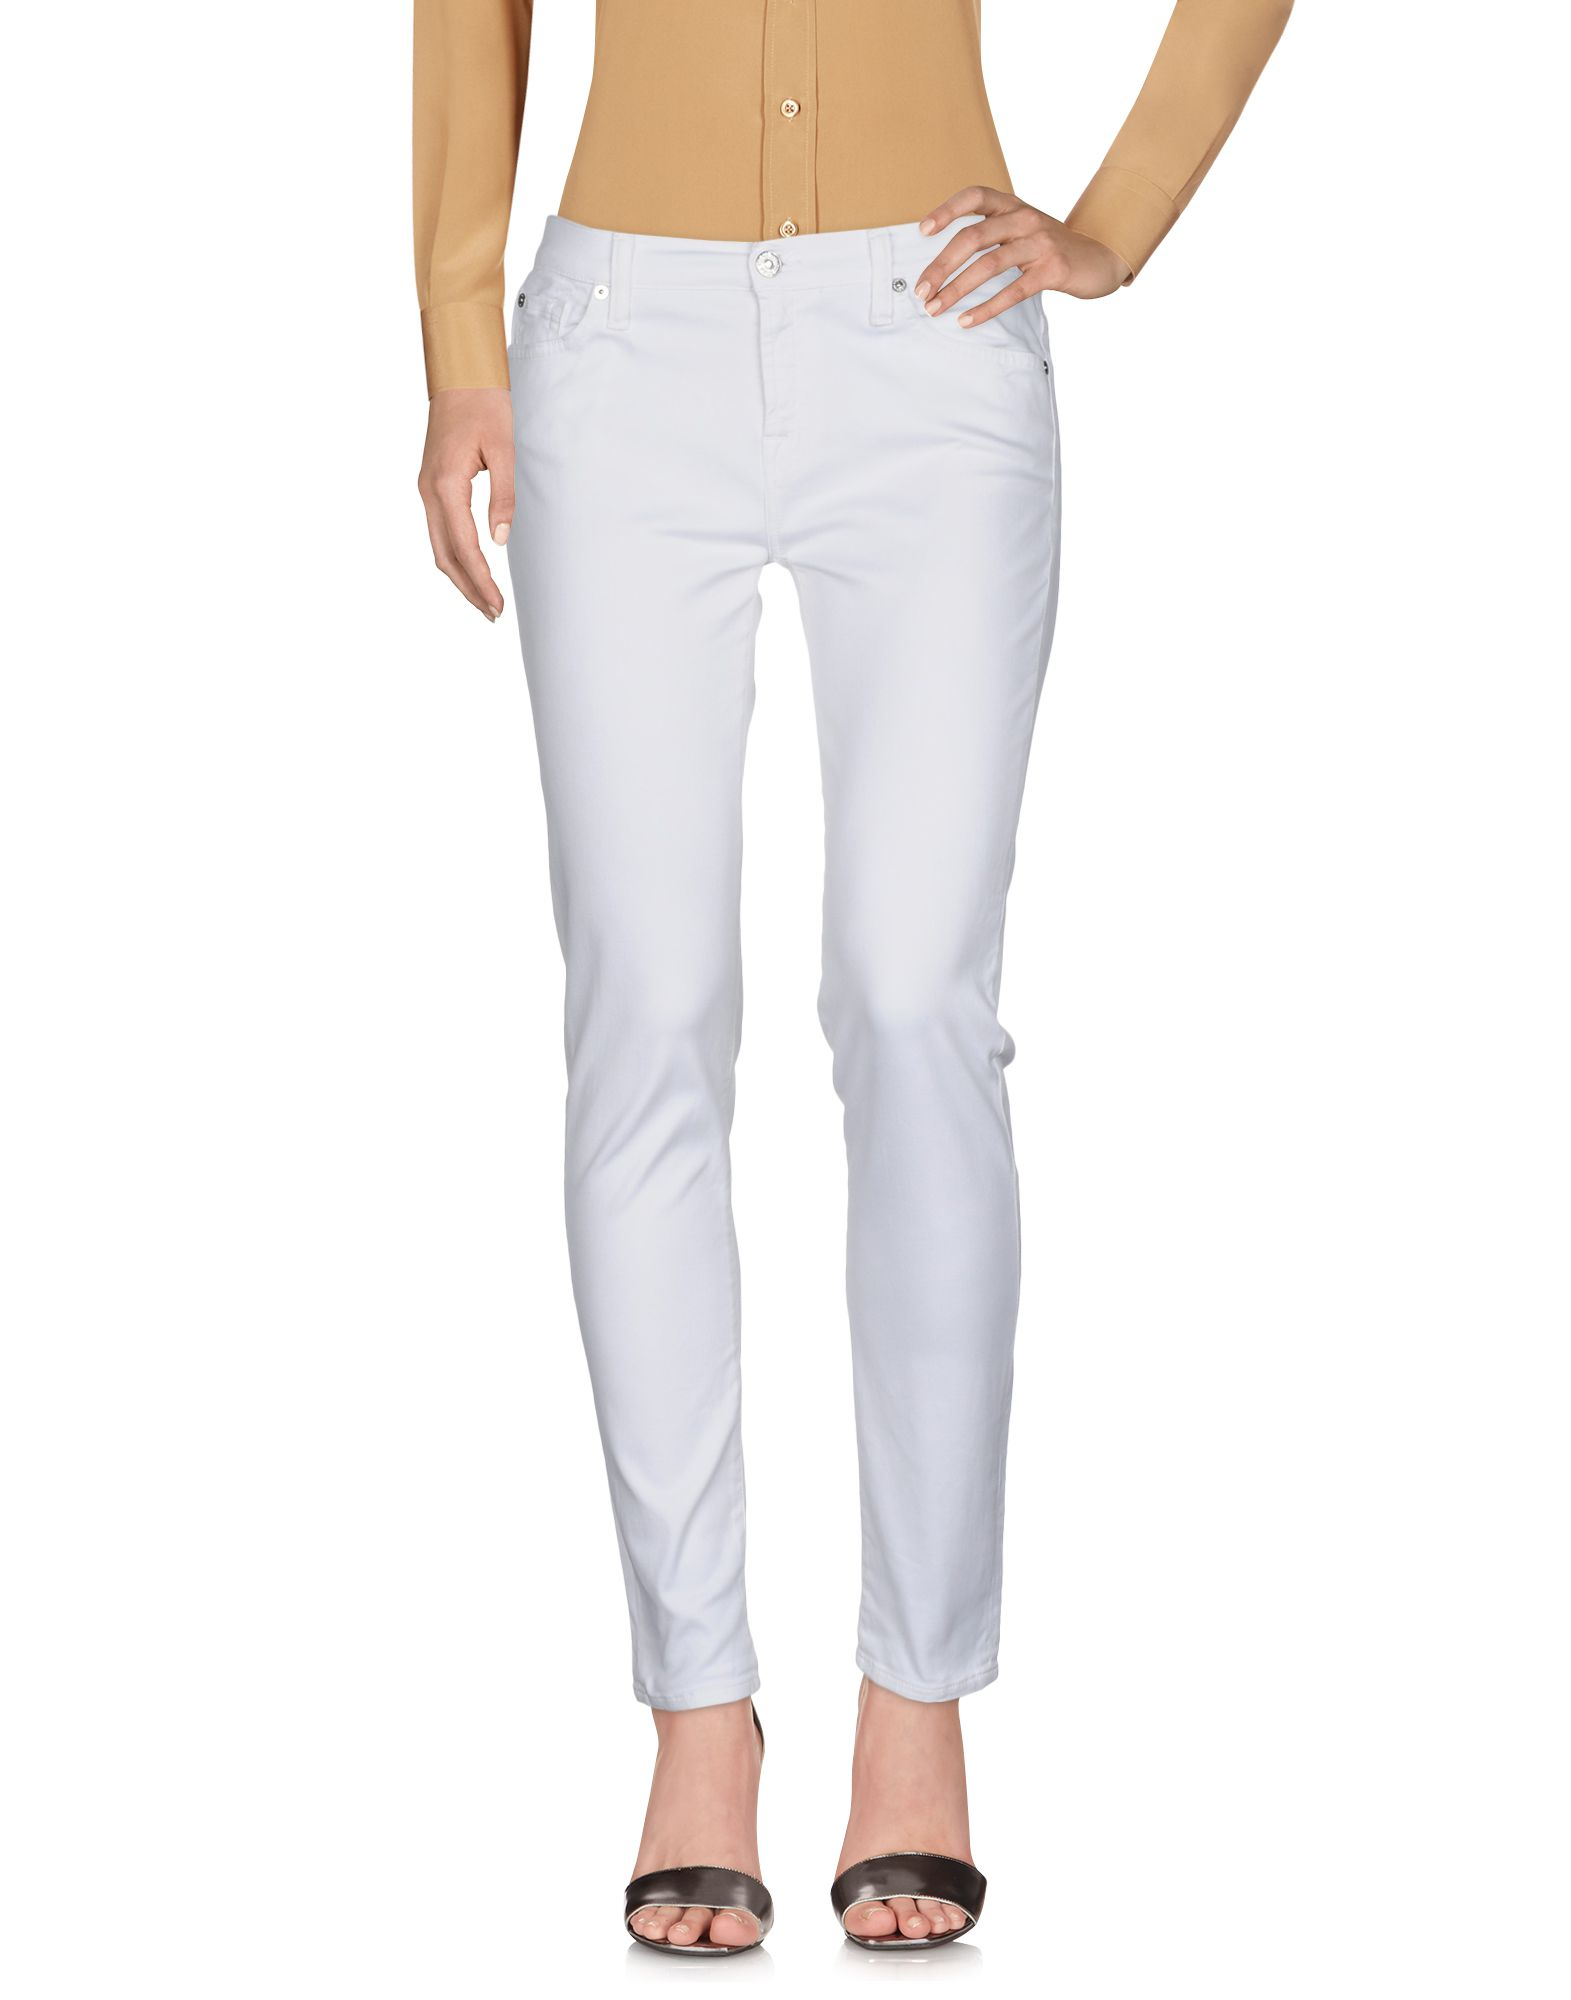 Pantalone 7 For All Mankind Donna - Acquista online su rYIrM5